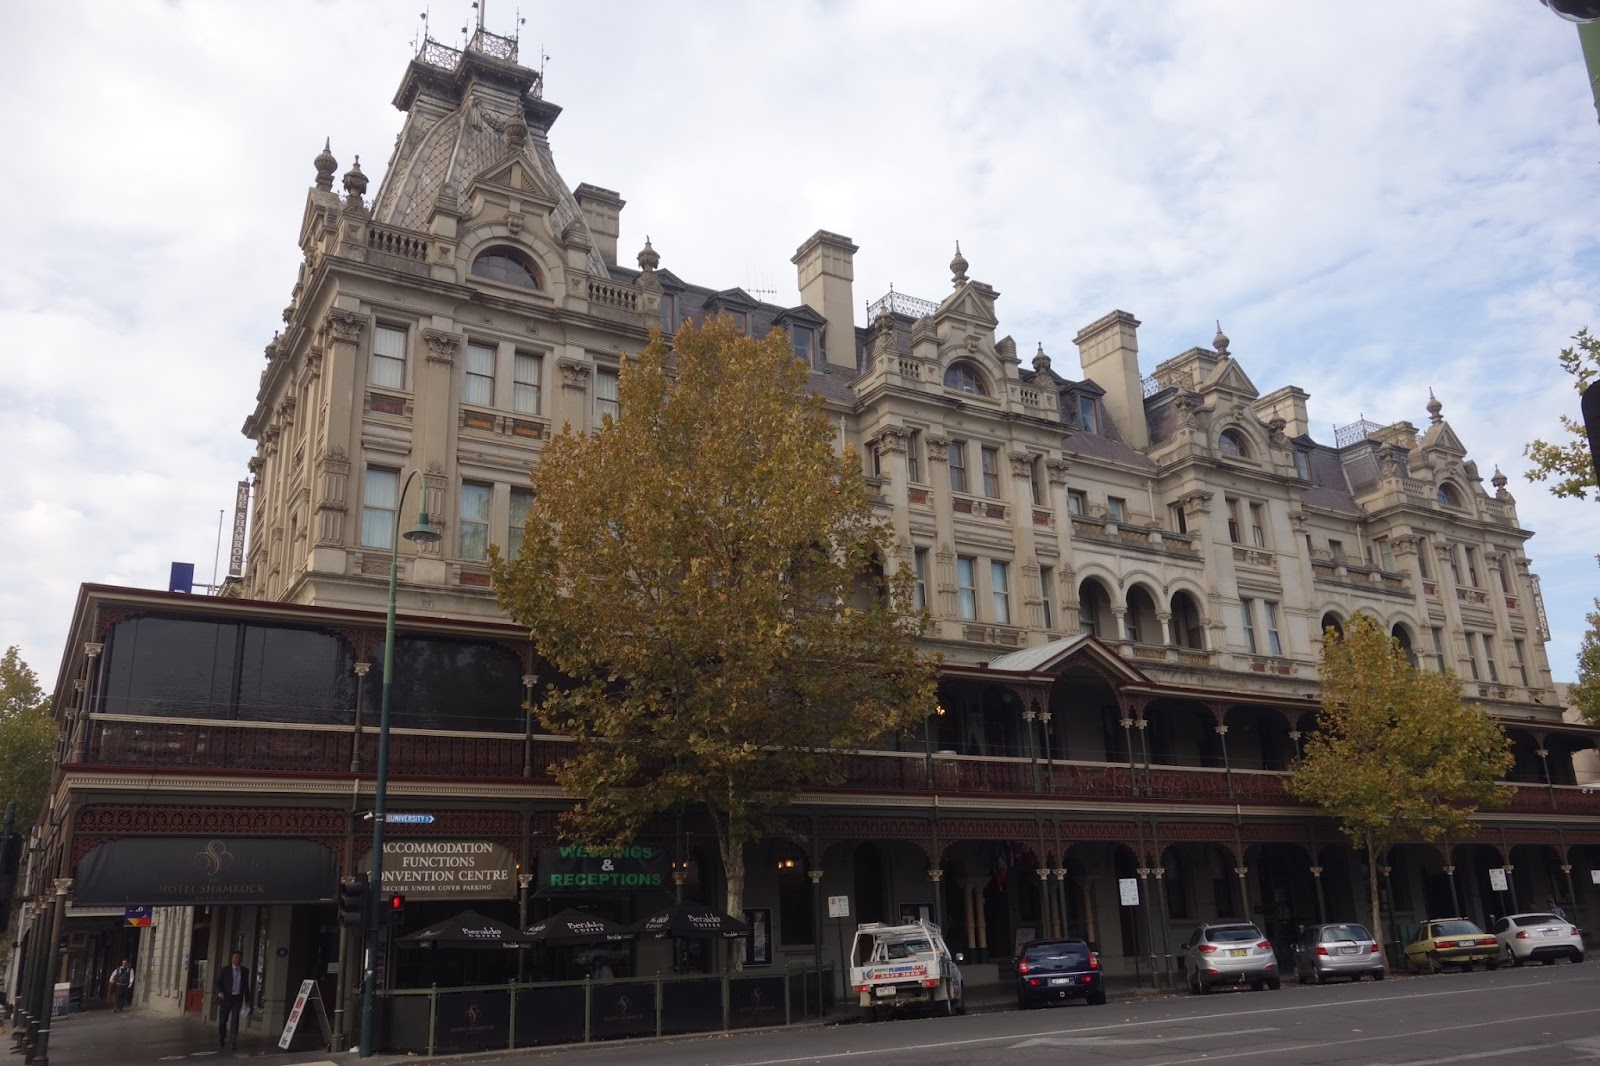 cheryl s travels exploring a new location bendigo the original town hall building was built in 1858 but then in the early 1880s one of the city s most influential architects transformed the bendigo town